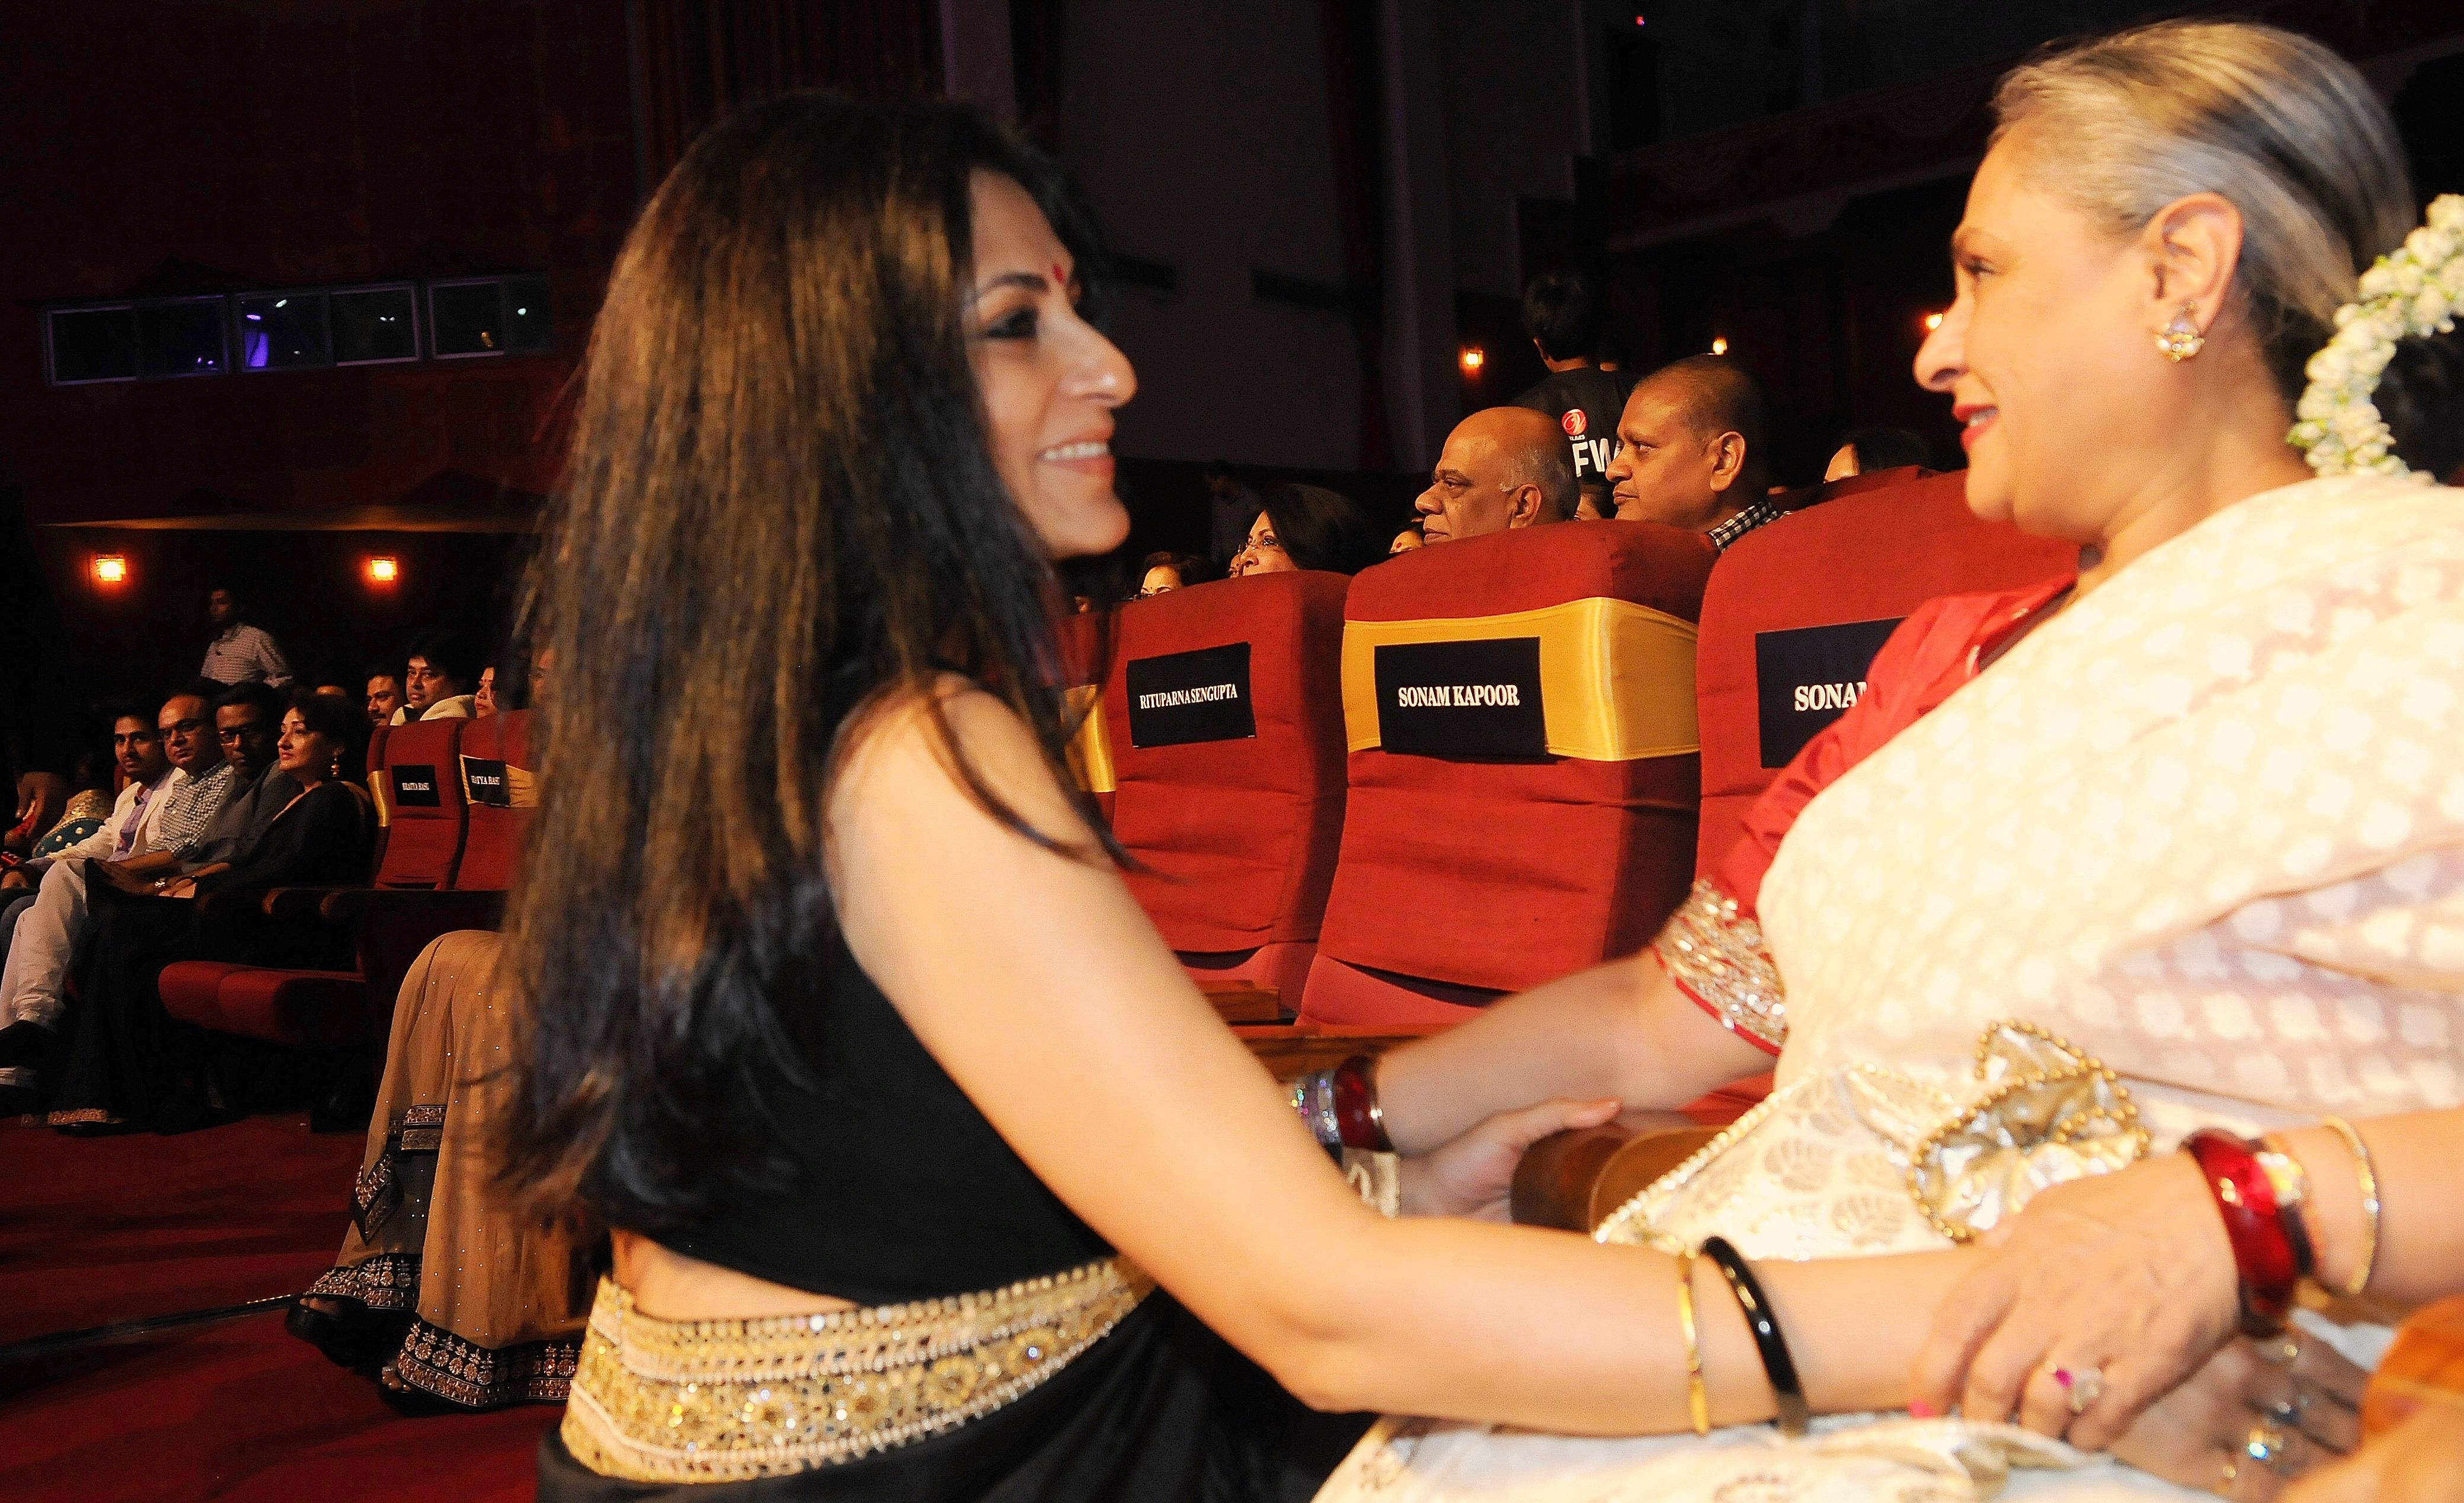 Rupa Ganguly with Jaya Bachchan during 1st Vivel Filmfare Awards 2013 (East) at Science City auditorium in Kolkata